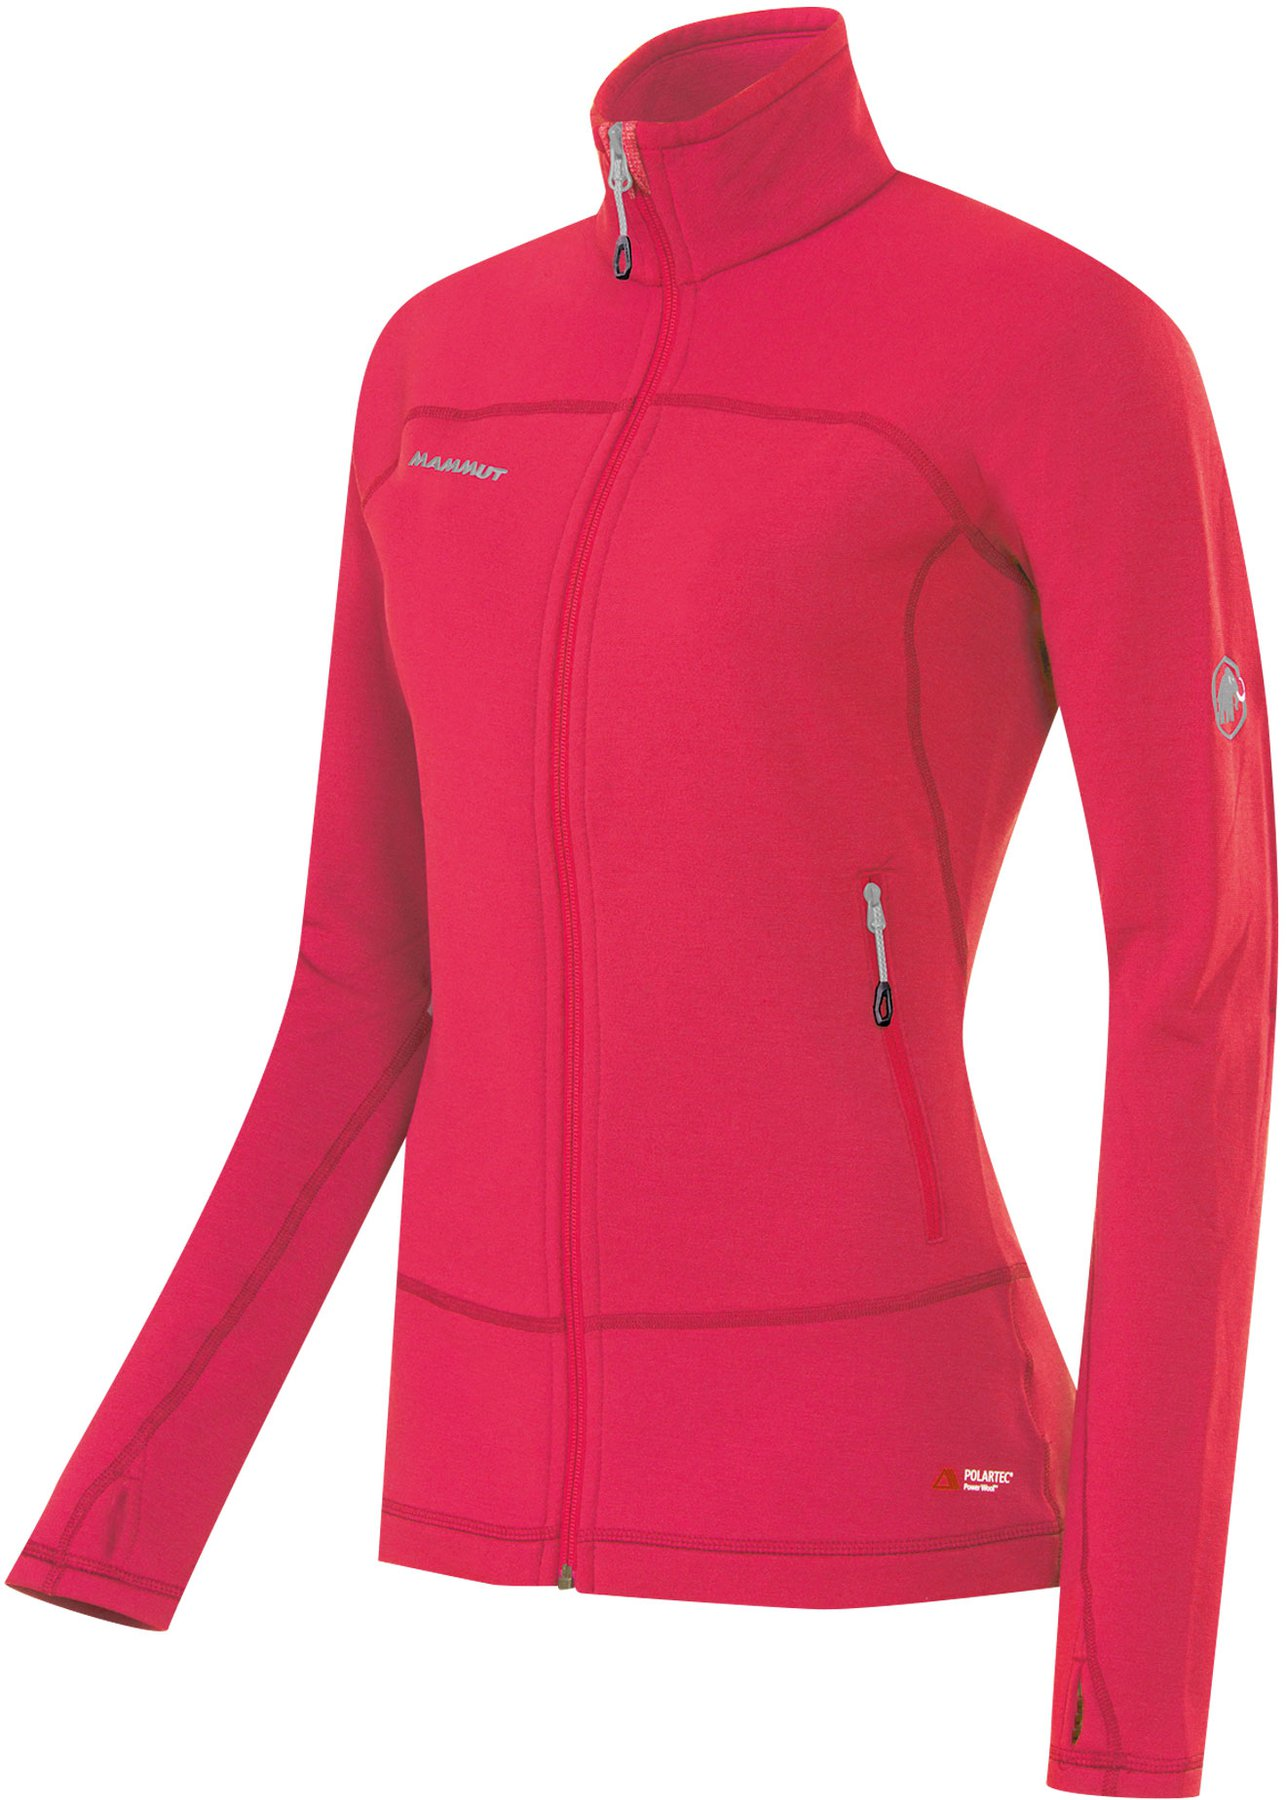 timeless design a8e27 848e6 Mammut Fleecejacke Damen